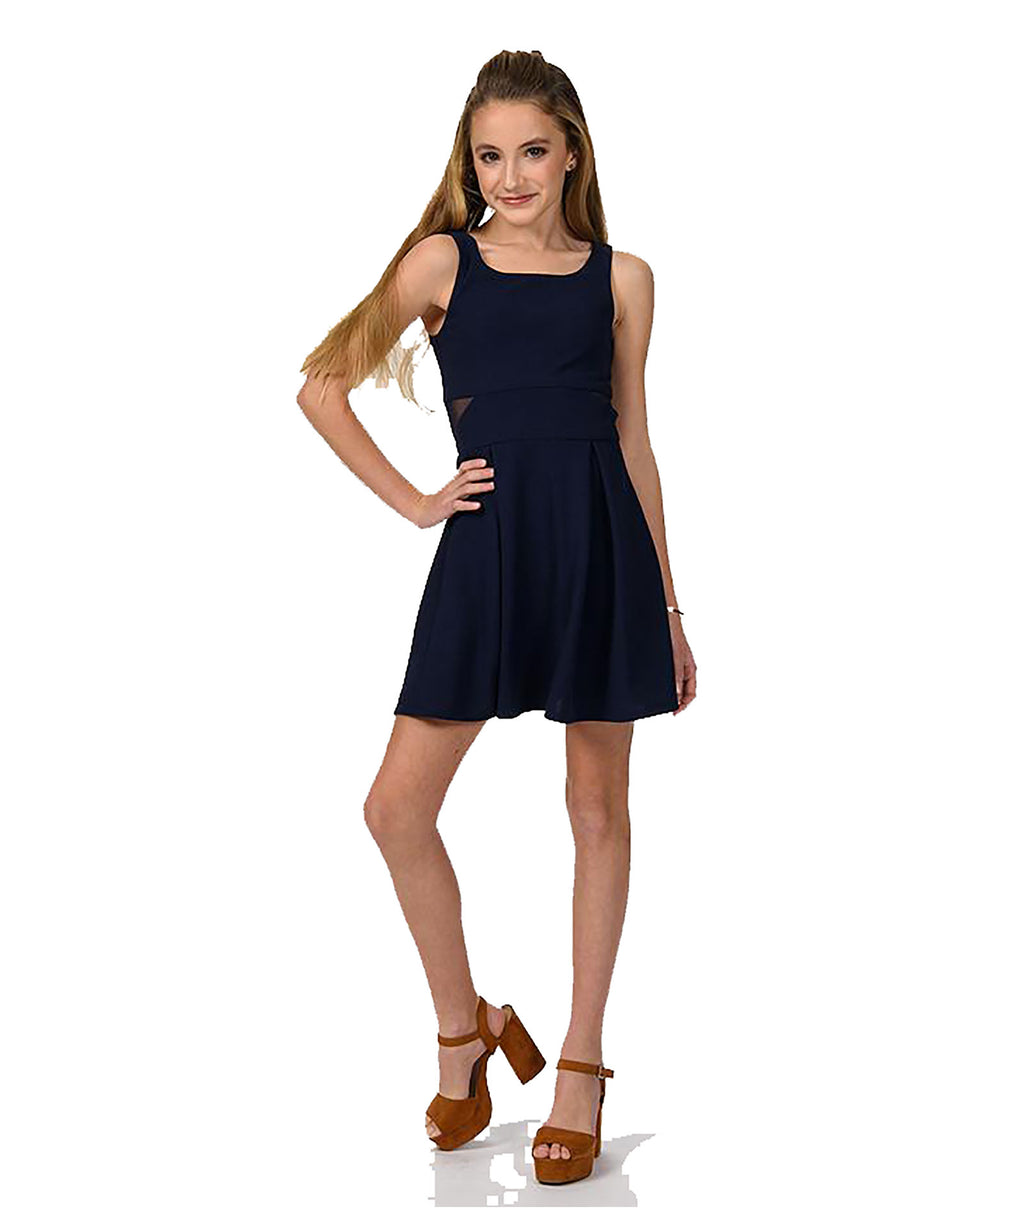 Sally Miller Girls Hope Navy Dress